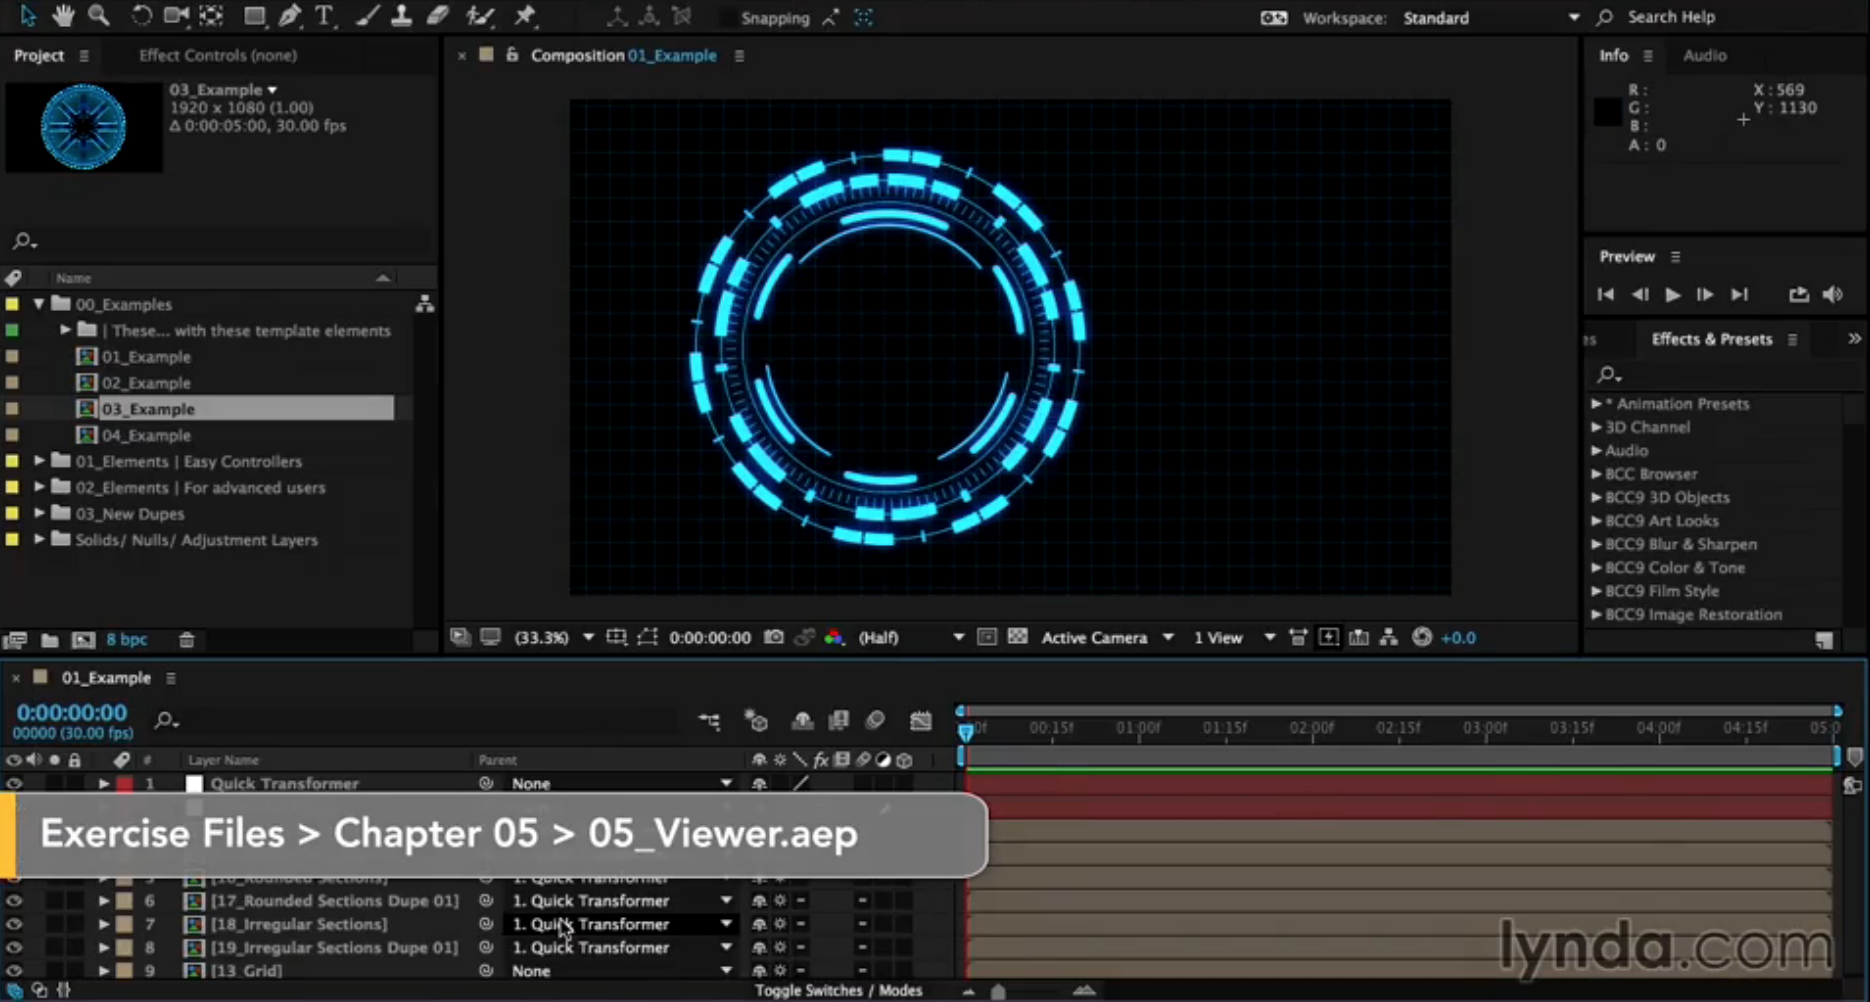 Previewing compositions in the After Effects Primary Viewer